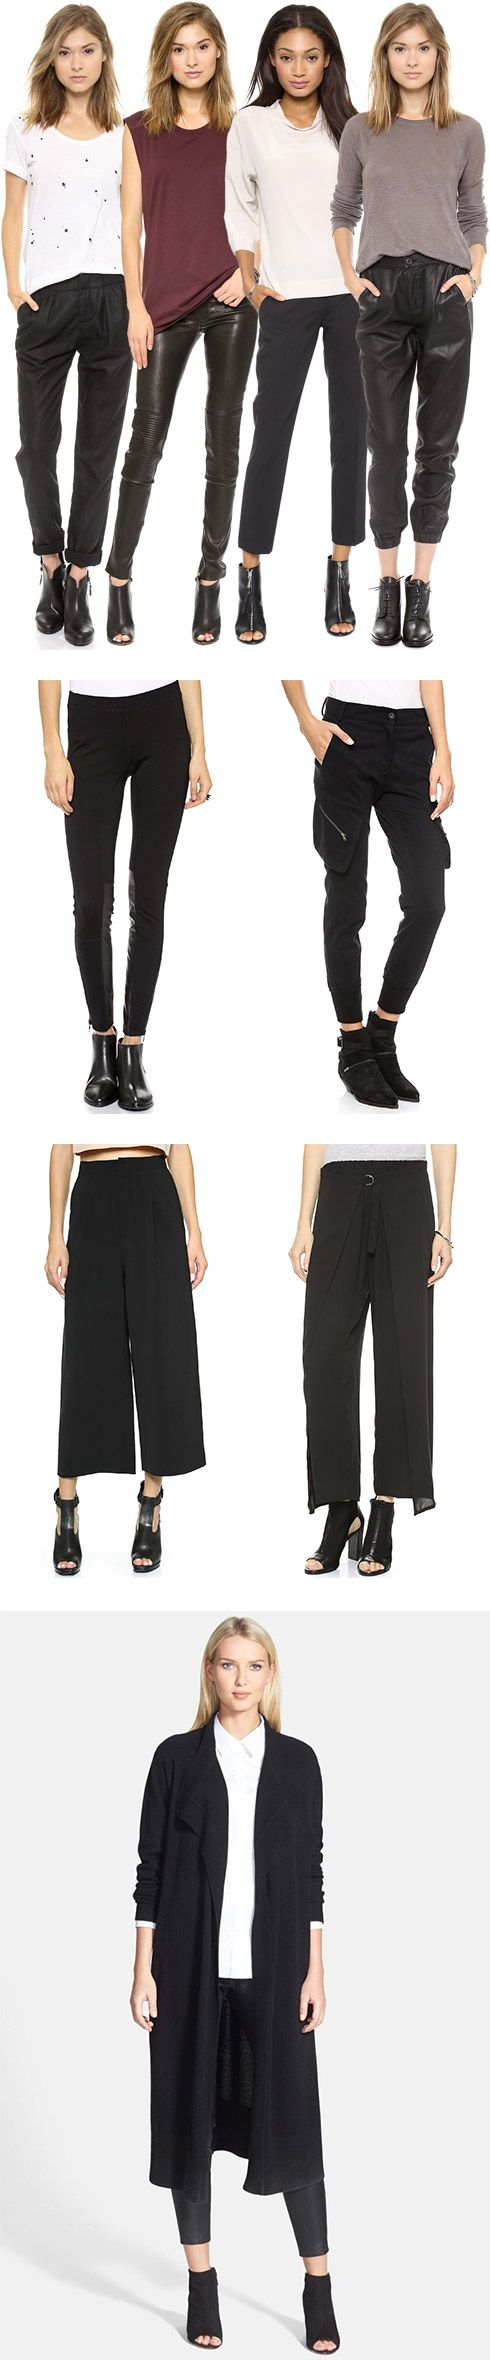 1000  ideas about Black Ankle Pants on Pinterest | Ankle pants